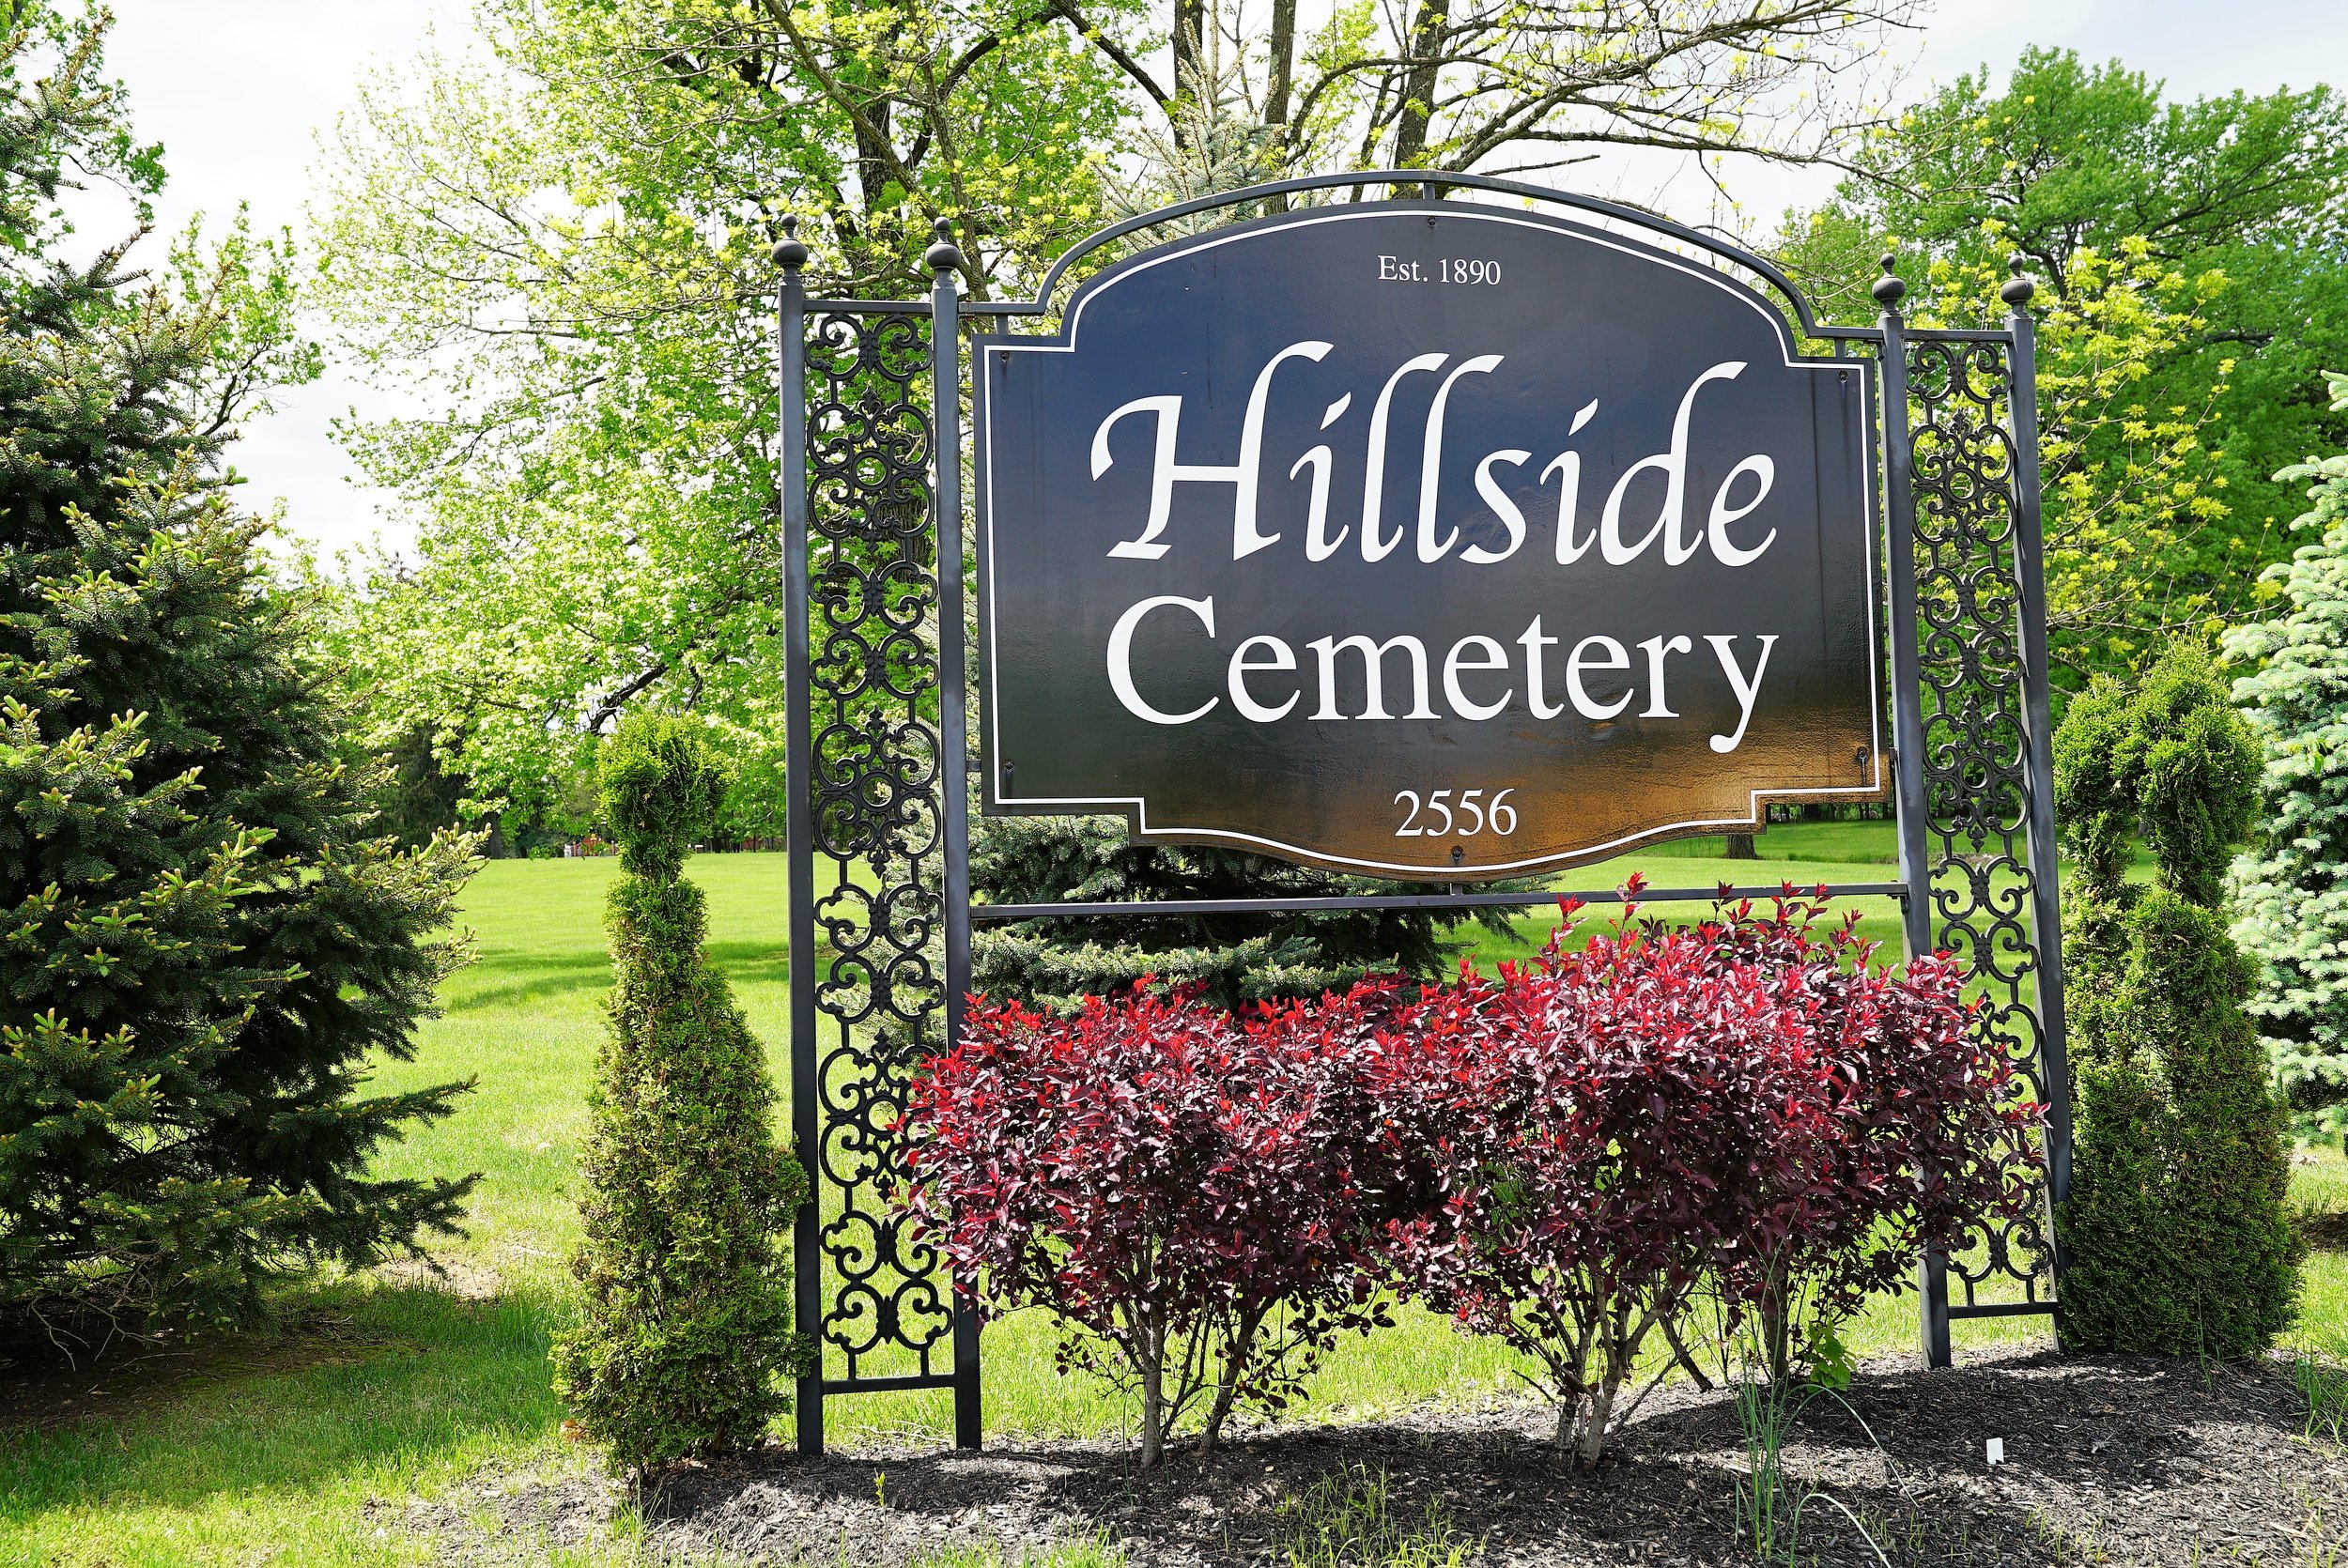 At one of the entrances to Hillside Cemetery. Rosylyn, Pennylvania.